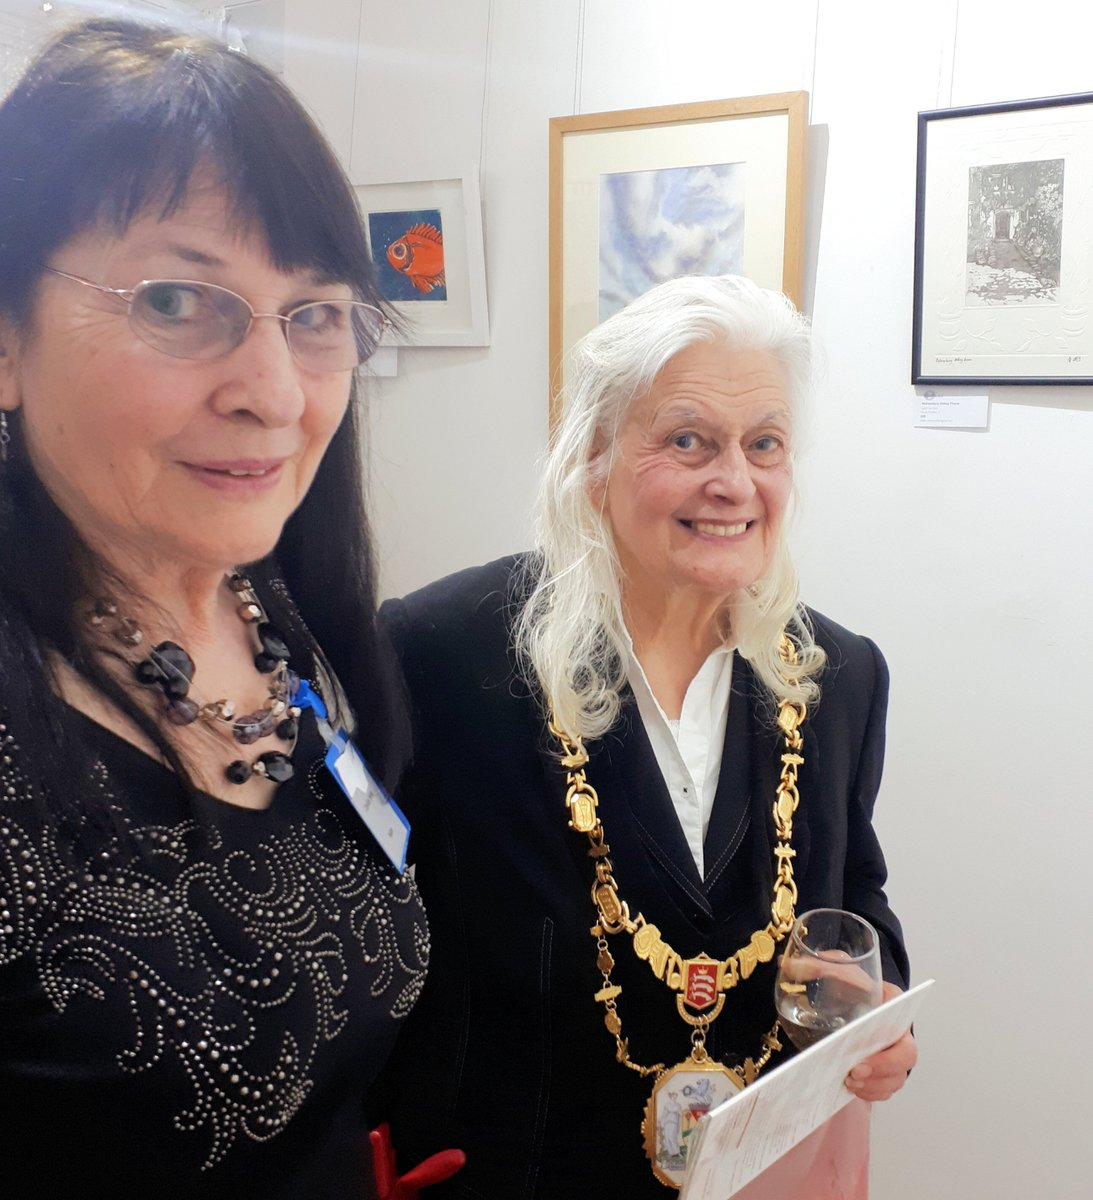 test Twitter Media - We had a marvelous time at our private view at Harrow Art Centre. Opened by Mayor of Harrow Cllr Margaret Davine. Thank you to everyone involved who organised and participated in the exhibition. We welcome you in our individual artists' open studios during June. https://t.co/XvSg5ro23T